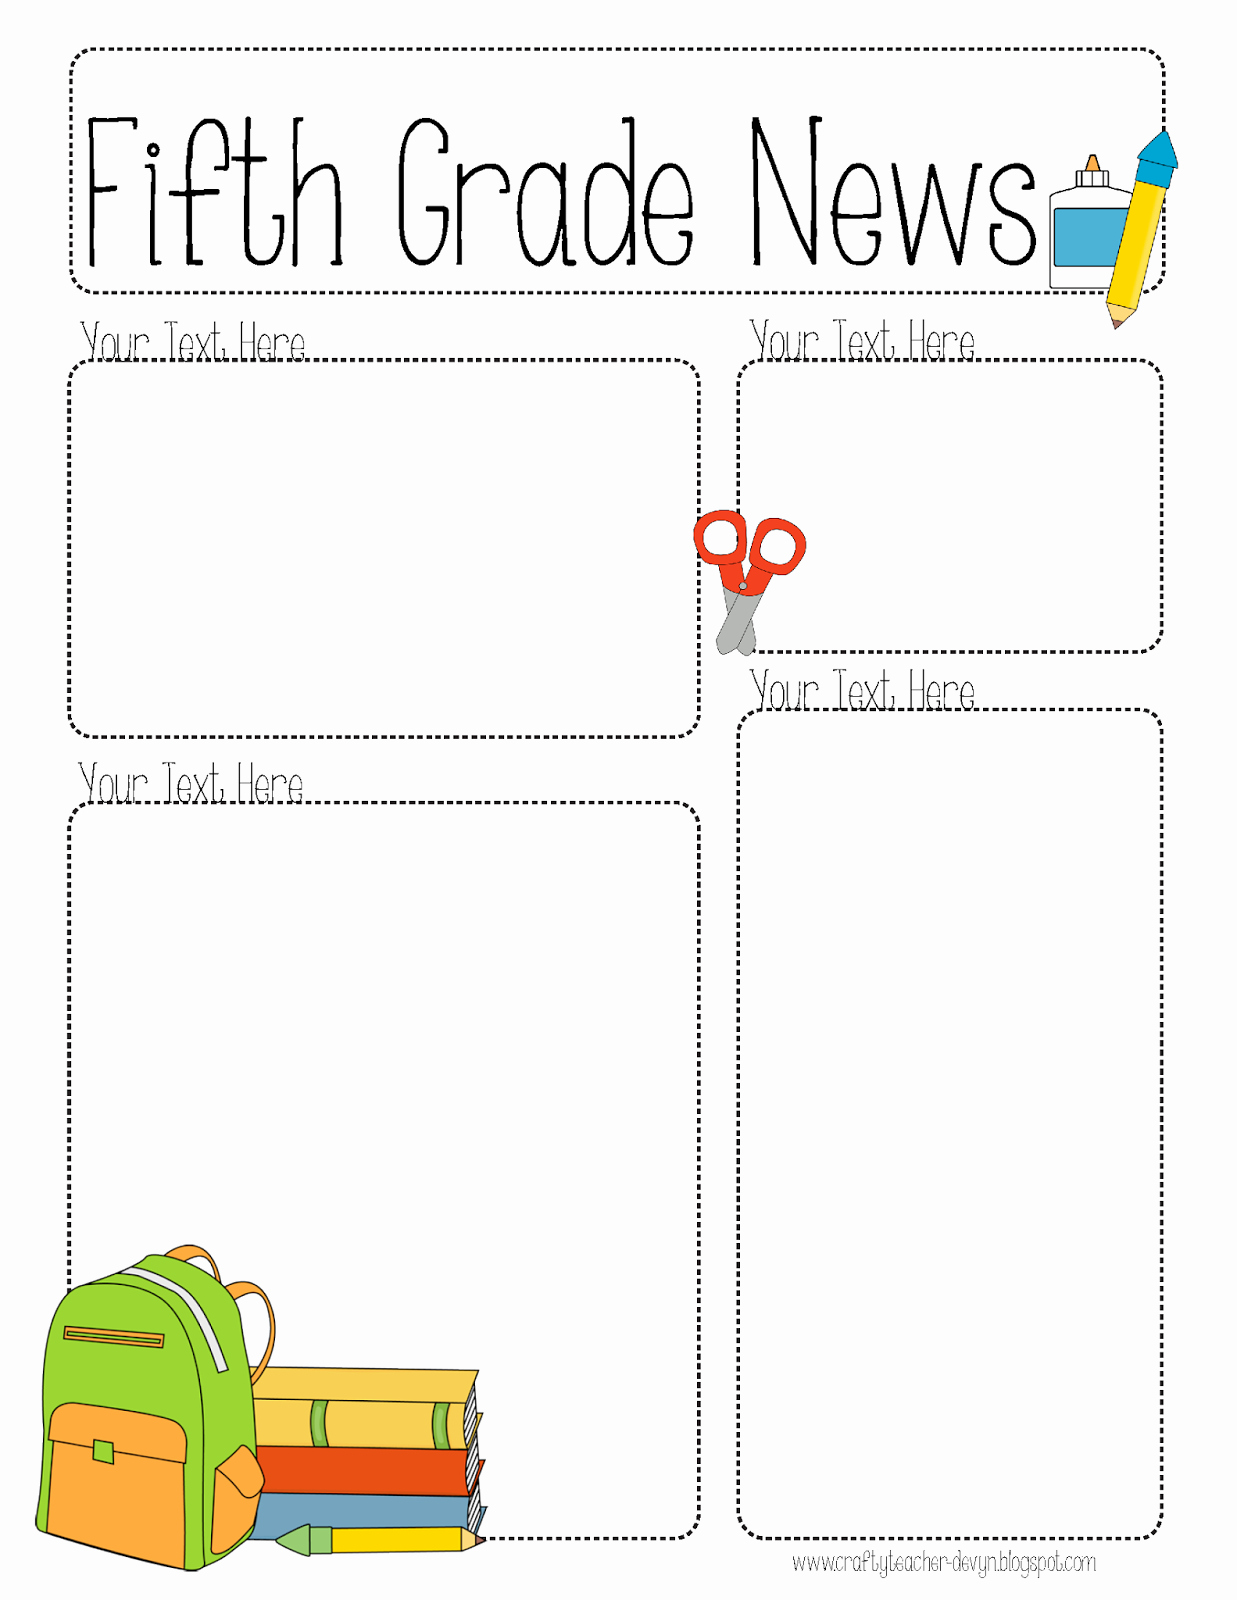 Pletely Editable Newsletter for All Grades